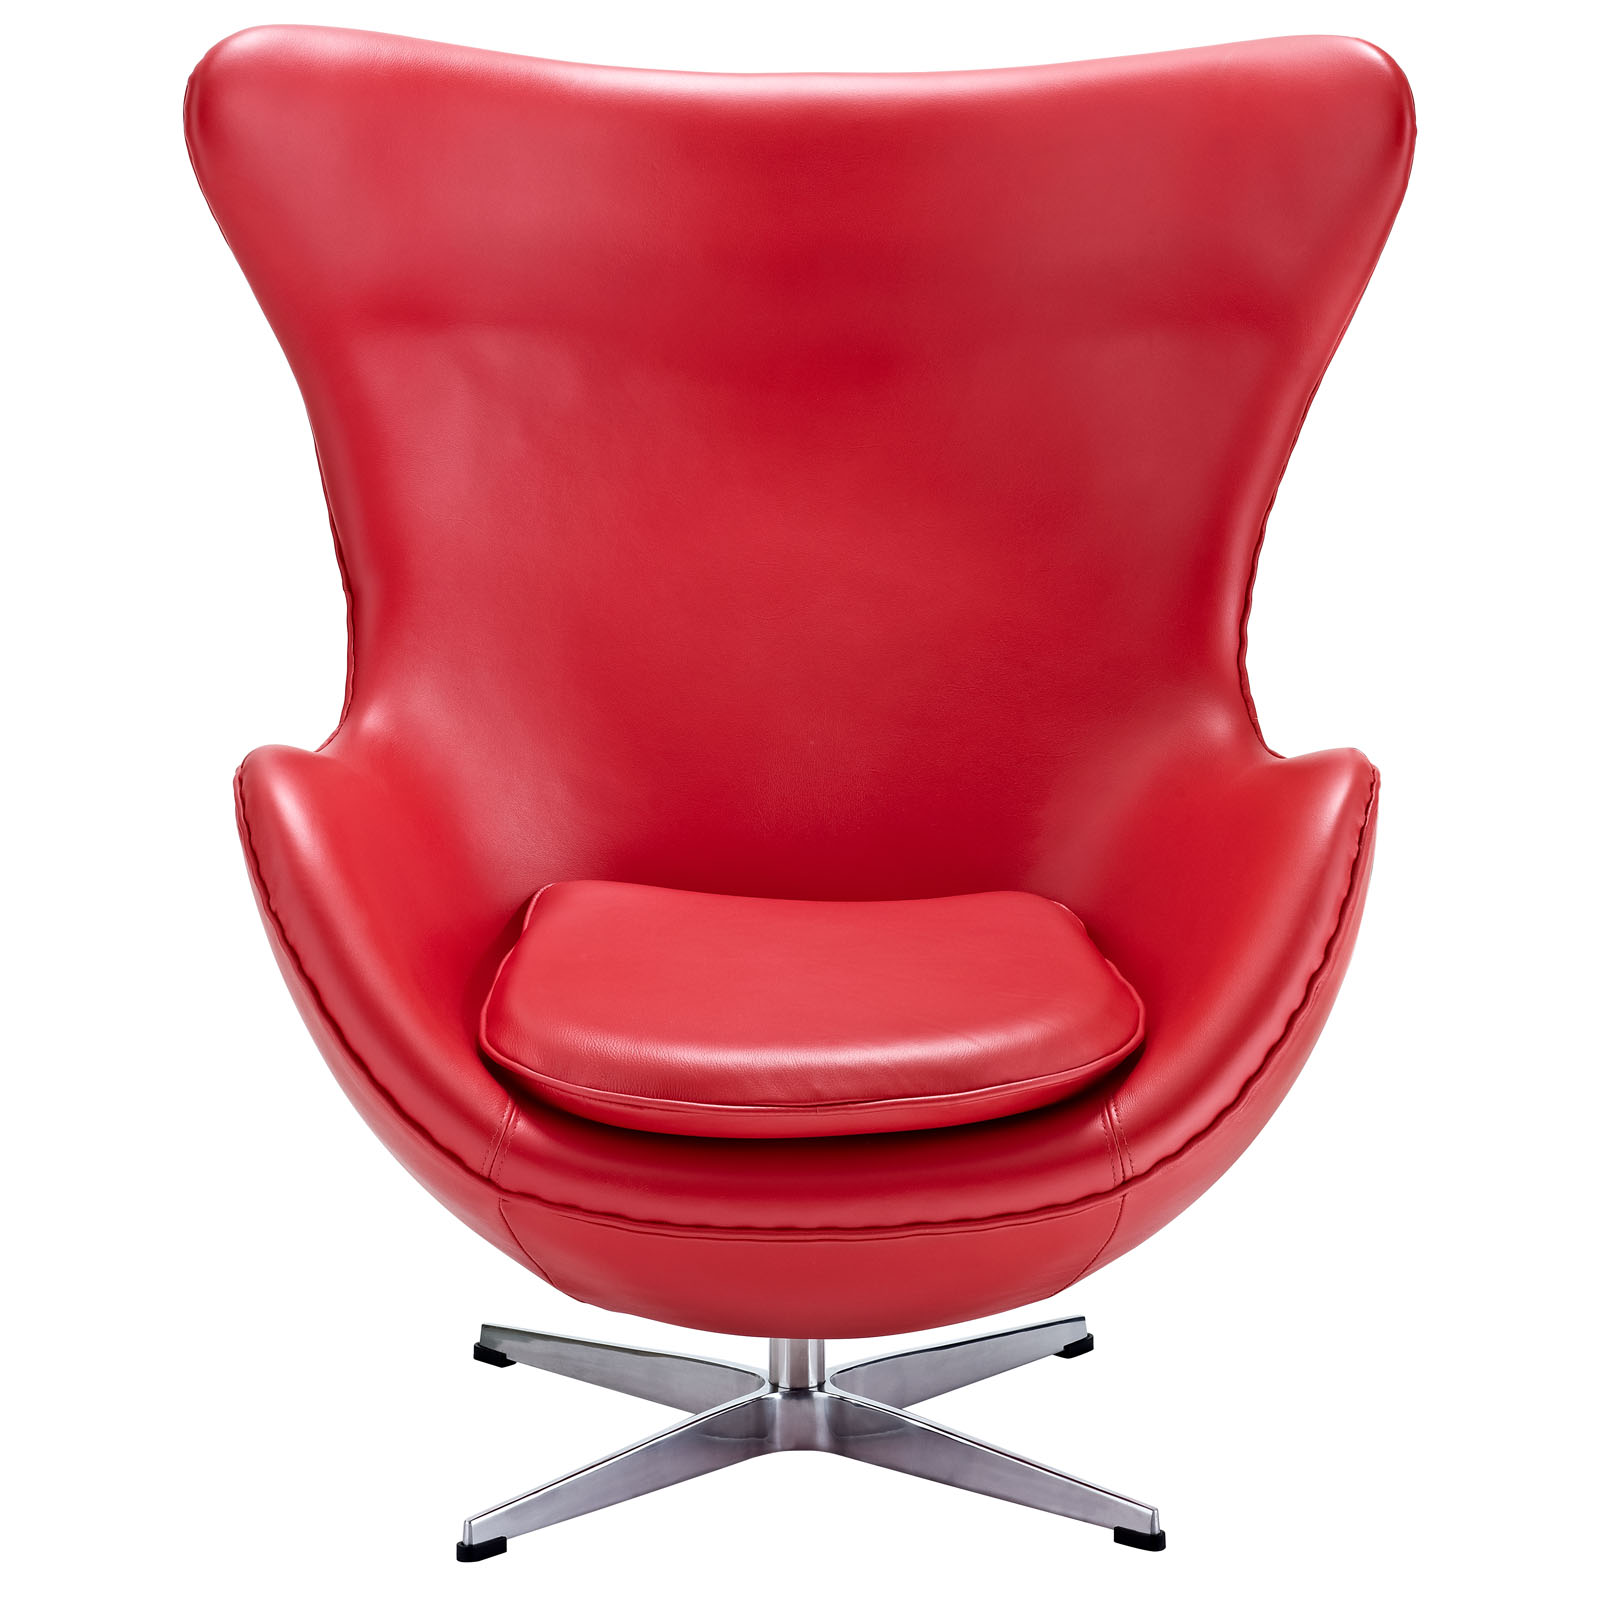 Magnum Red Leather Accent Chair